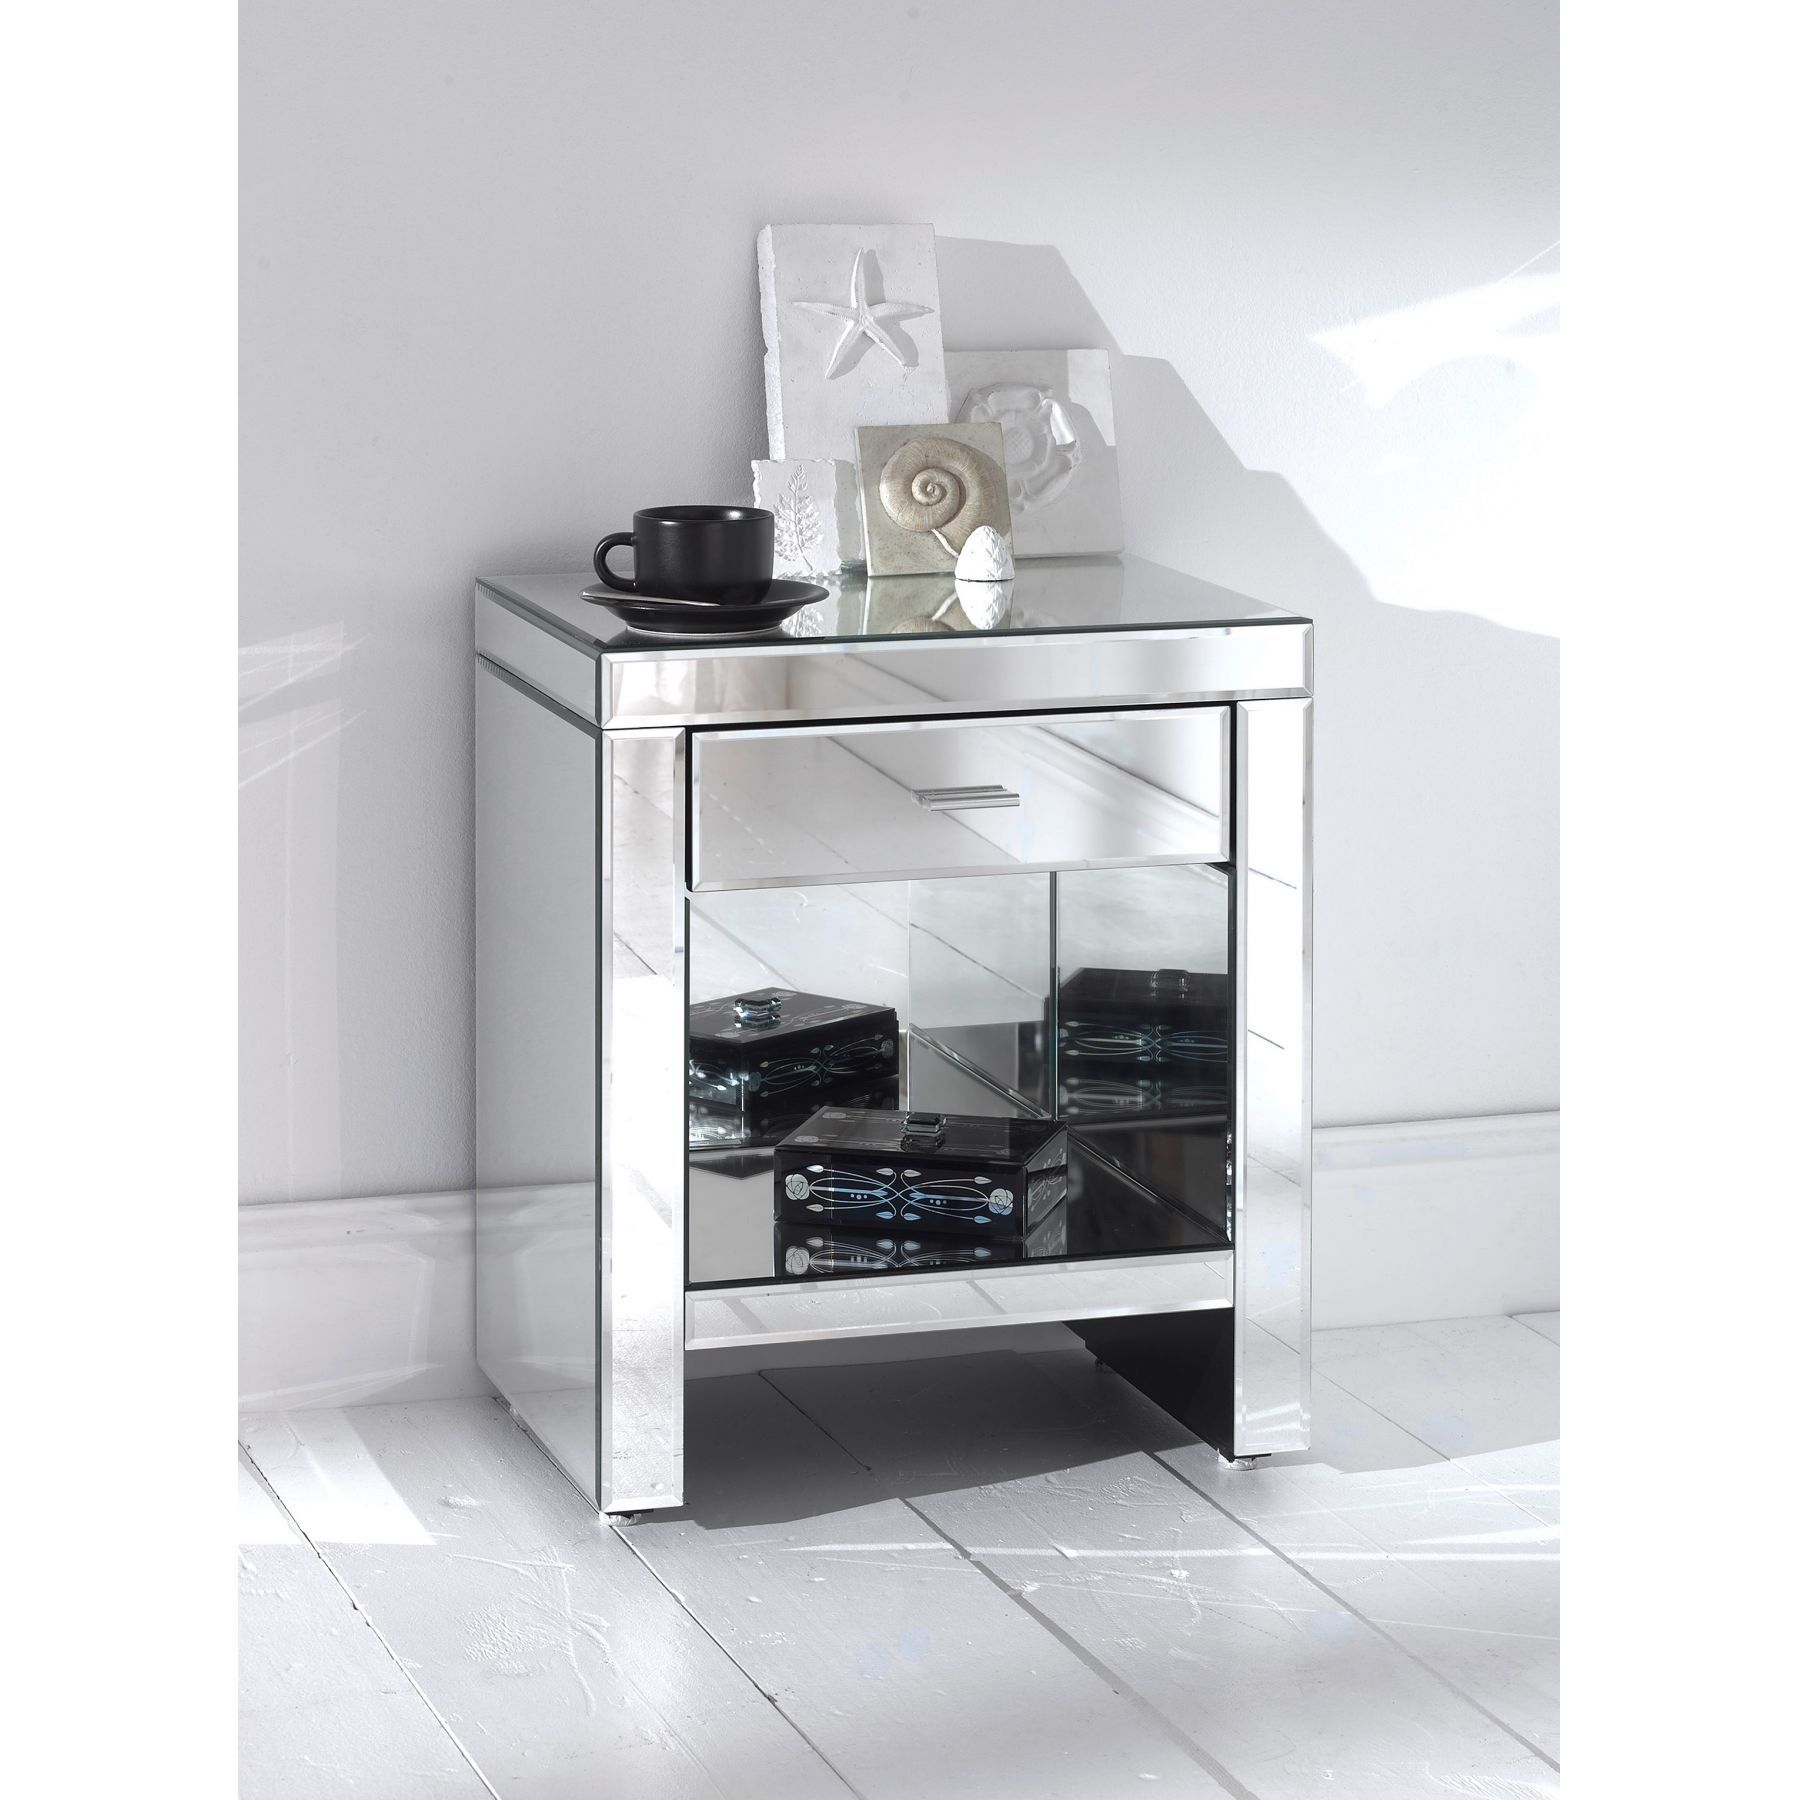 homegoods mirrored end table   Google Search. homegoods mirrored end table   Google Search   Side tables